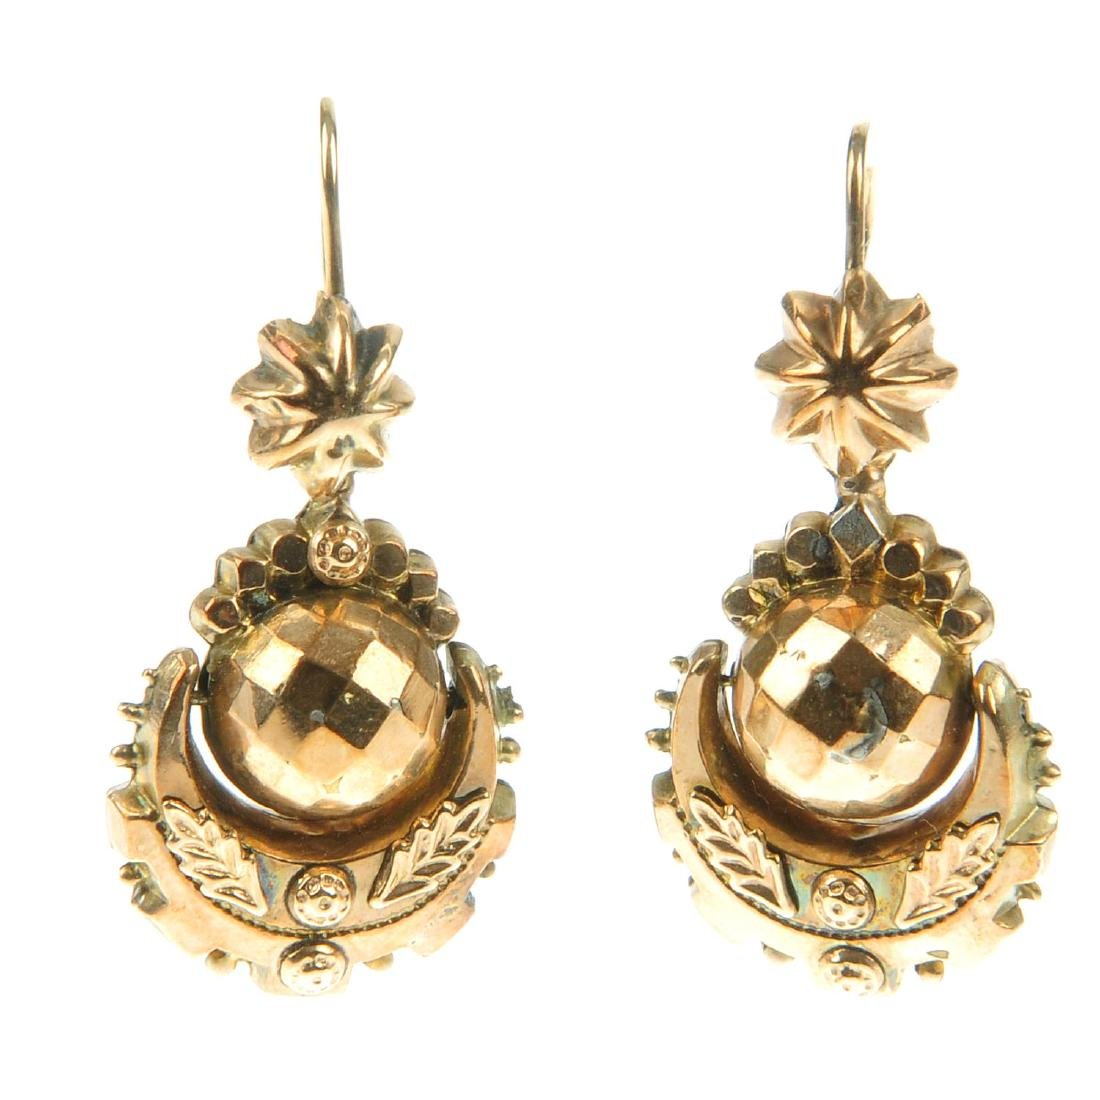 A pair of earrings. Designed as floral motifs, with